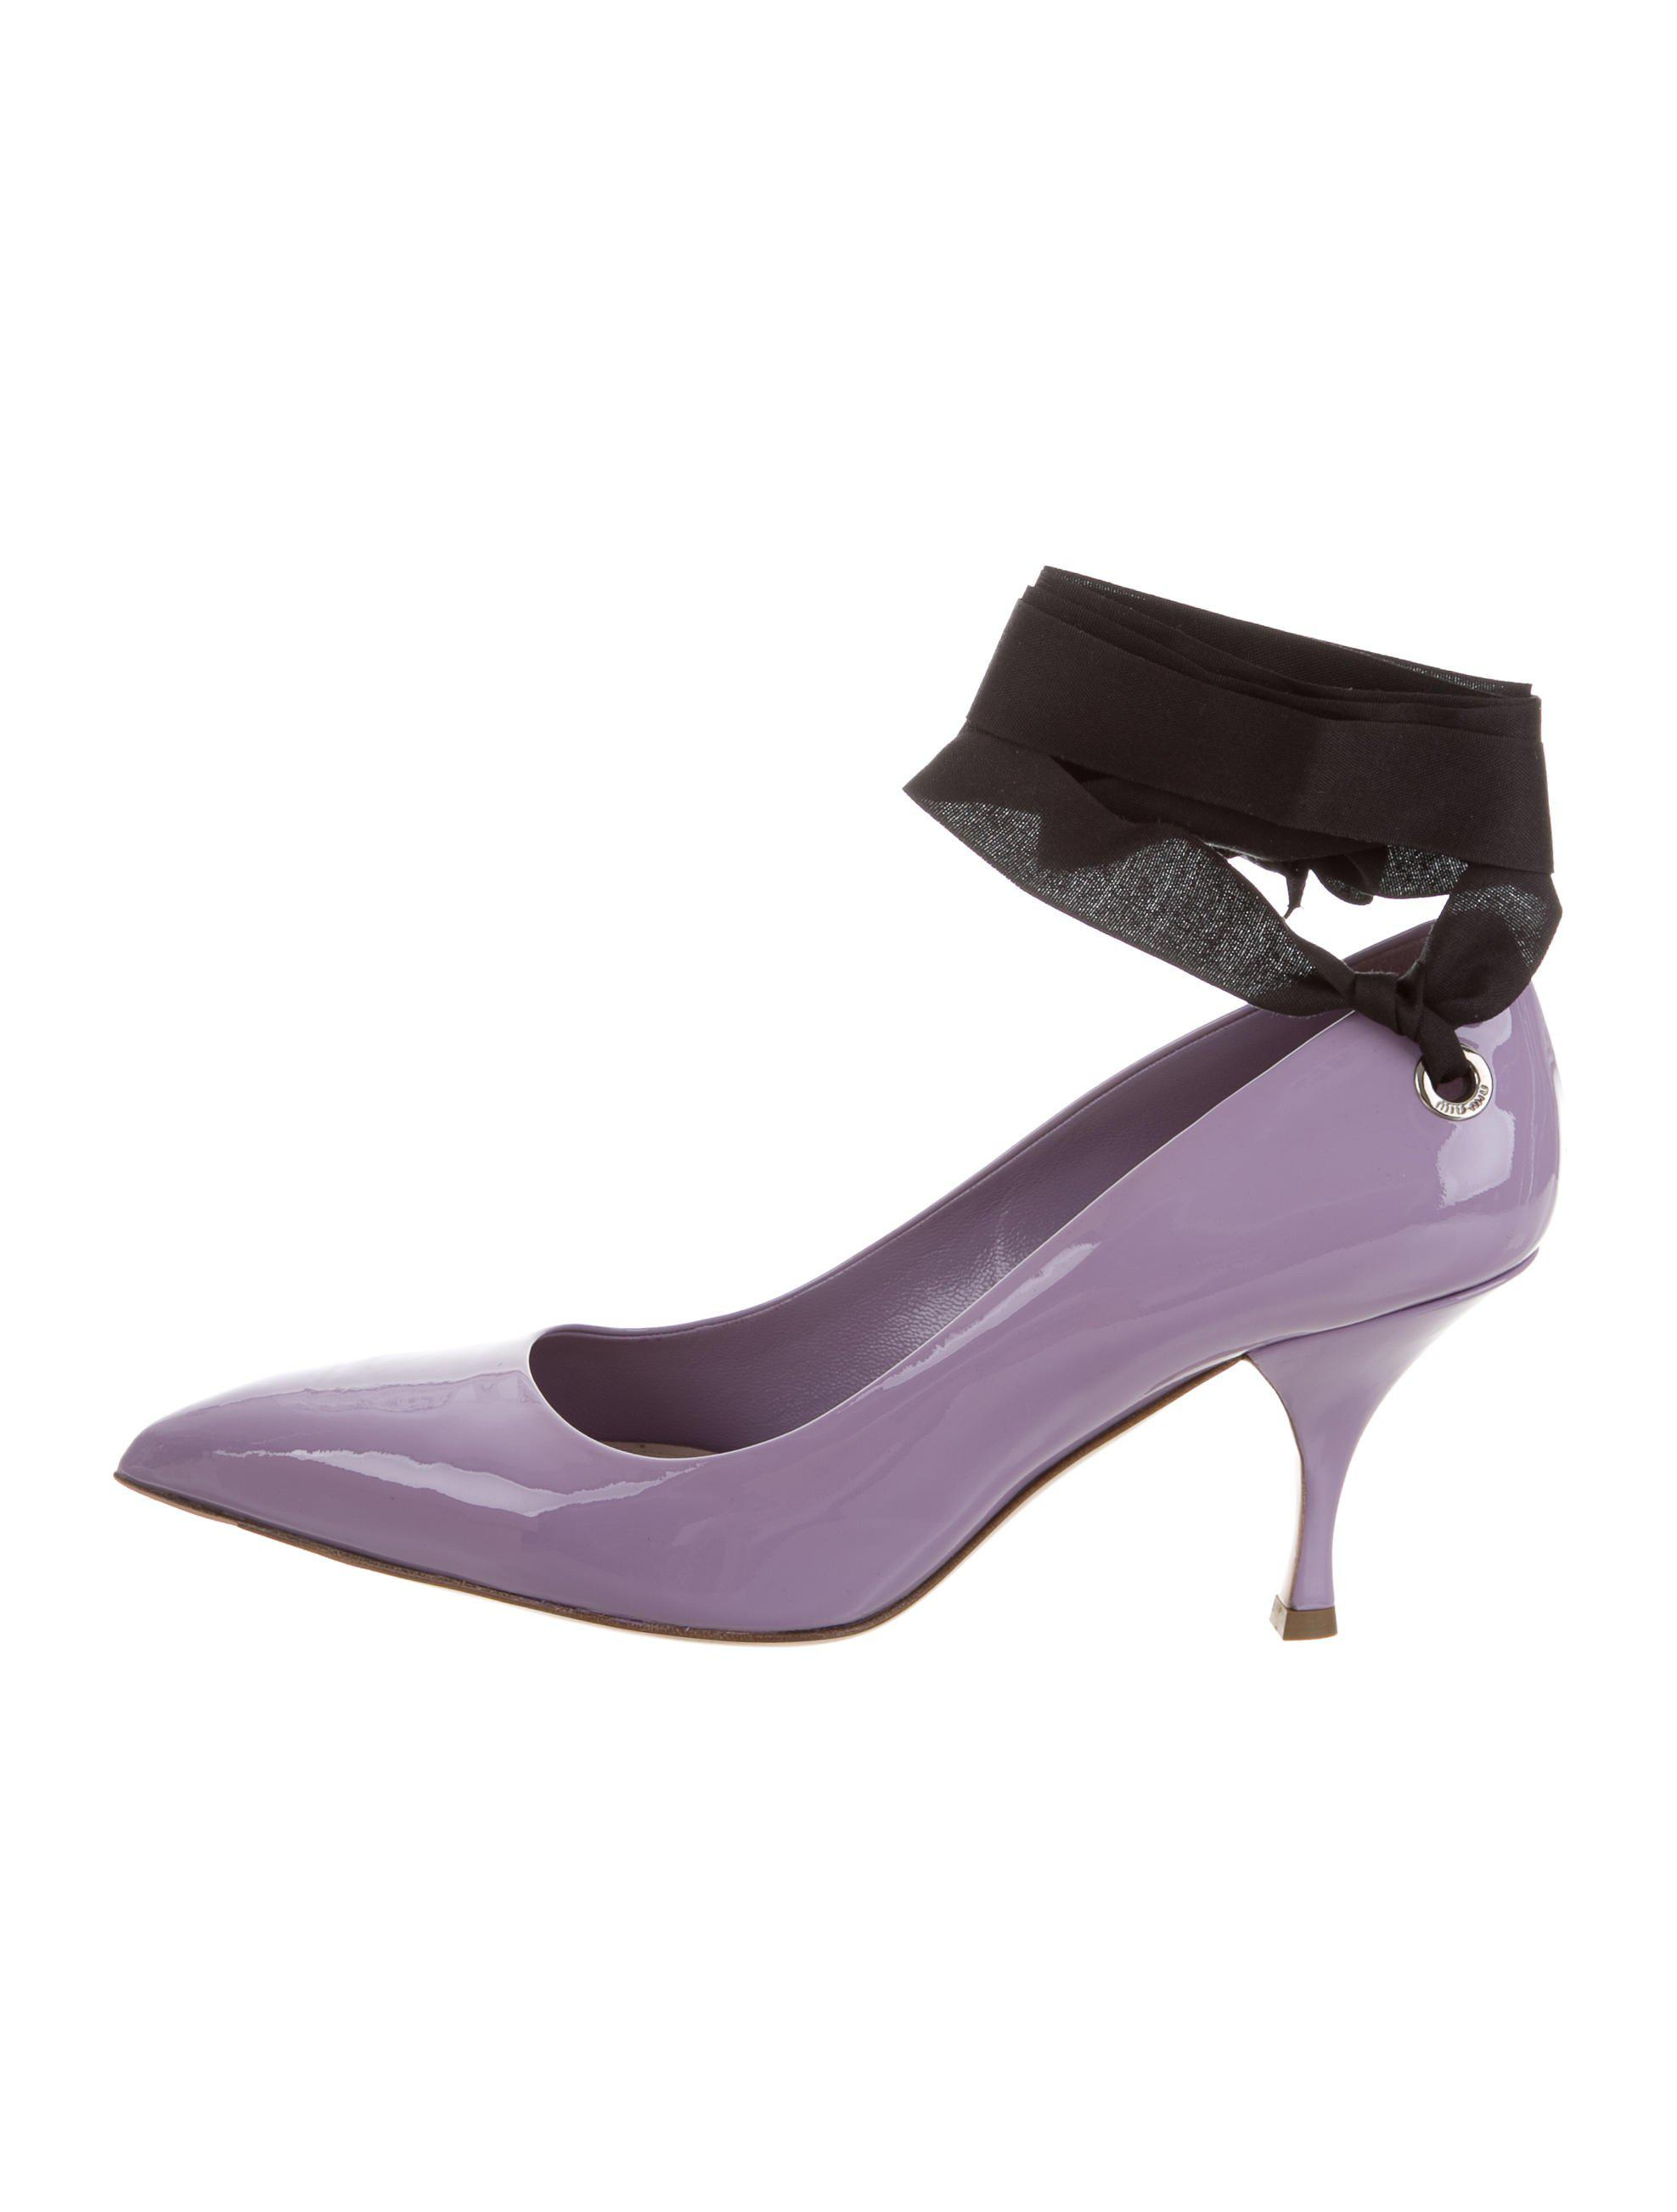 very cheap sale online Miu Miu Bow Patent Leather Pumps w/ Tags buy cheap many kinds of sast for sale sale really vhFGJU4tH